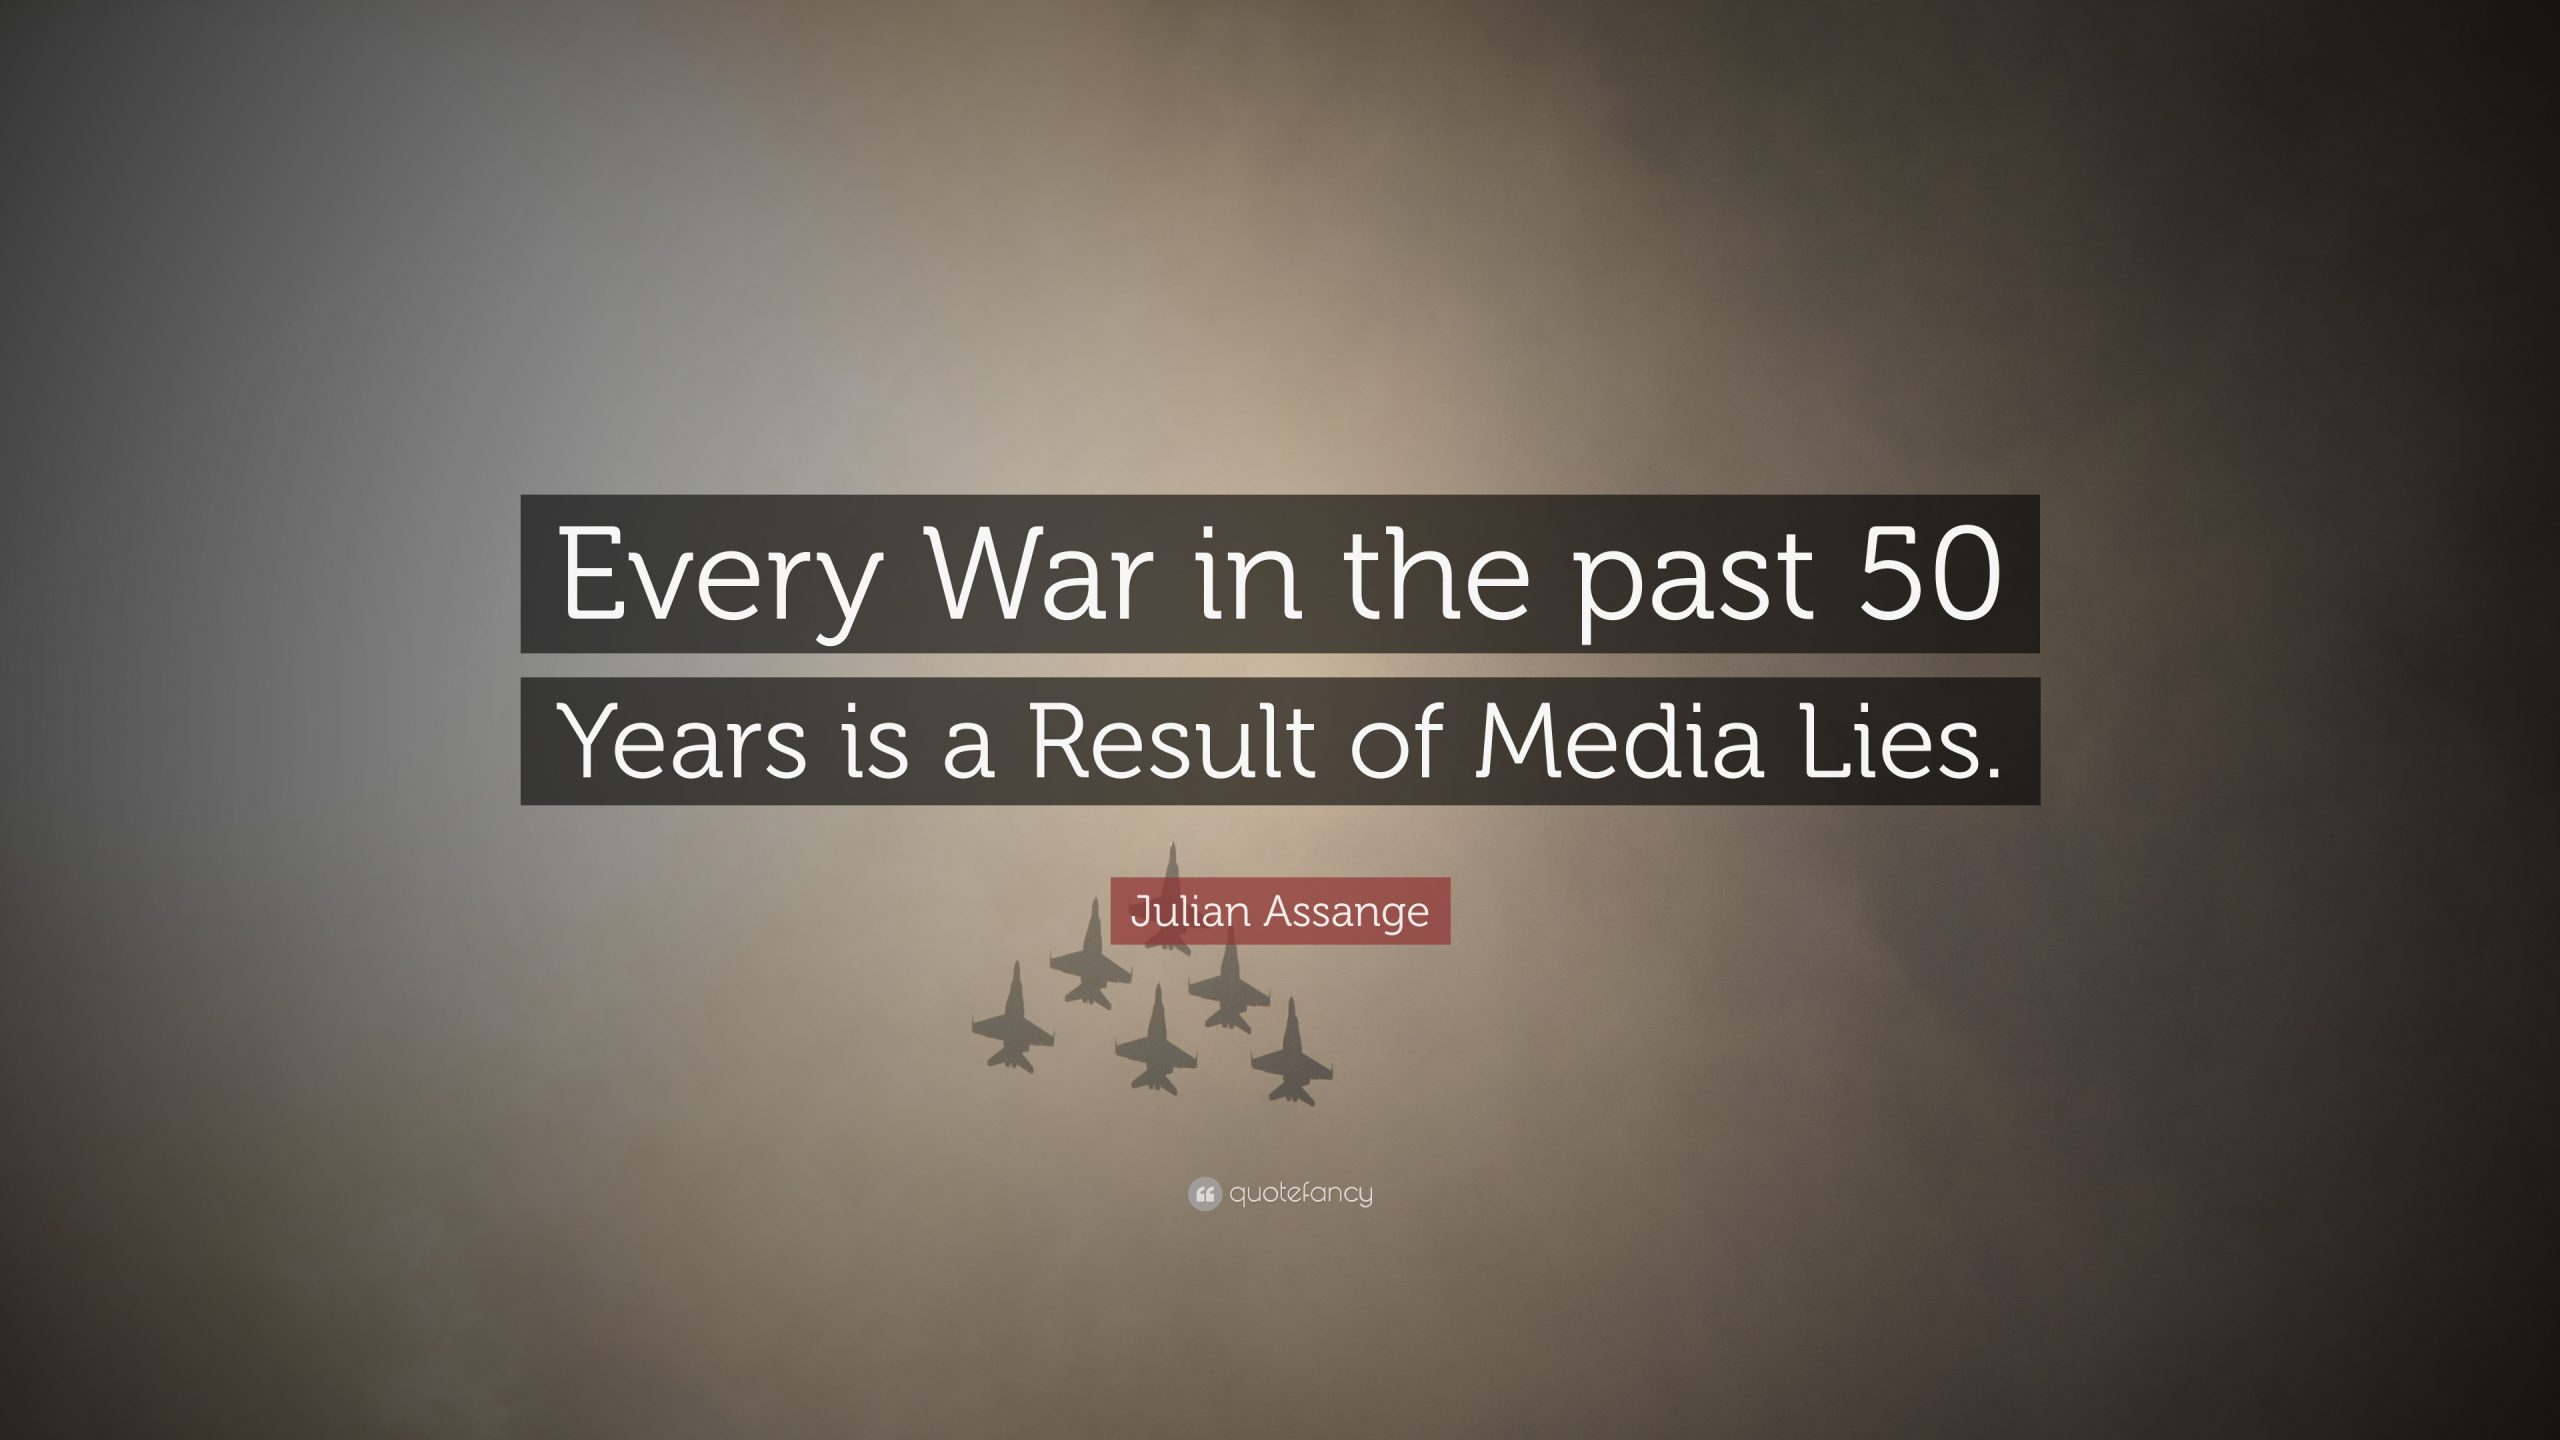 576077-Julian-Assange-Quote-Every-War-in-the-past-50-Years-is-a-Result-of